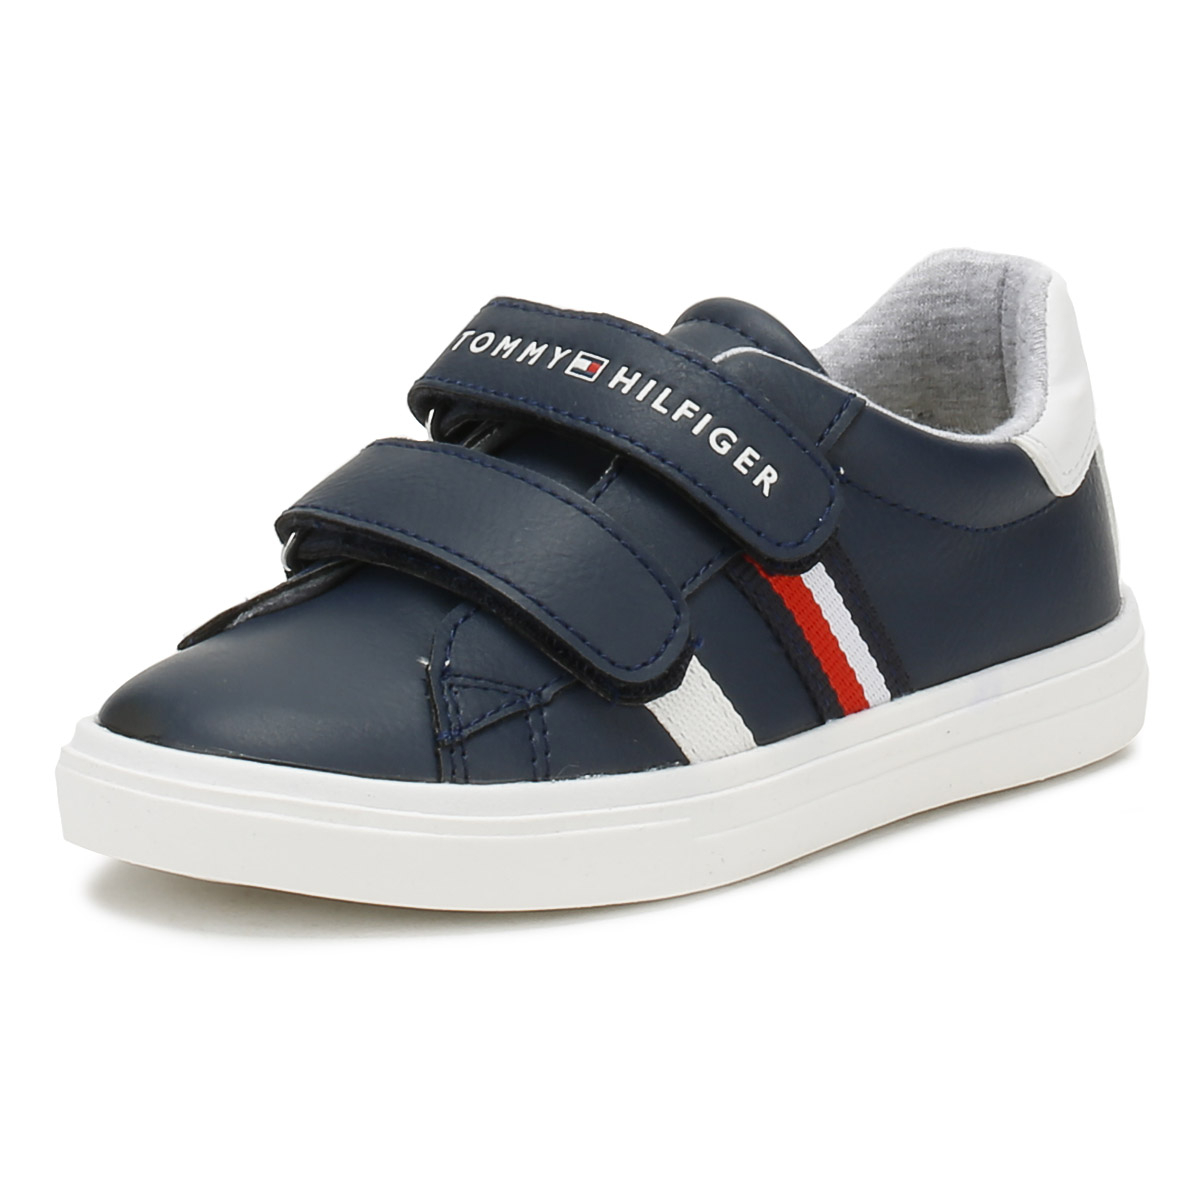 a80750fdf3e38 Details about Tommy Hilfiger Toddlers Midnight Blue T1X4 V Trainers Hook    Loop Kids Shoes